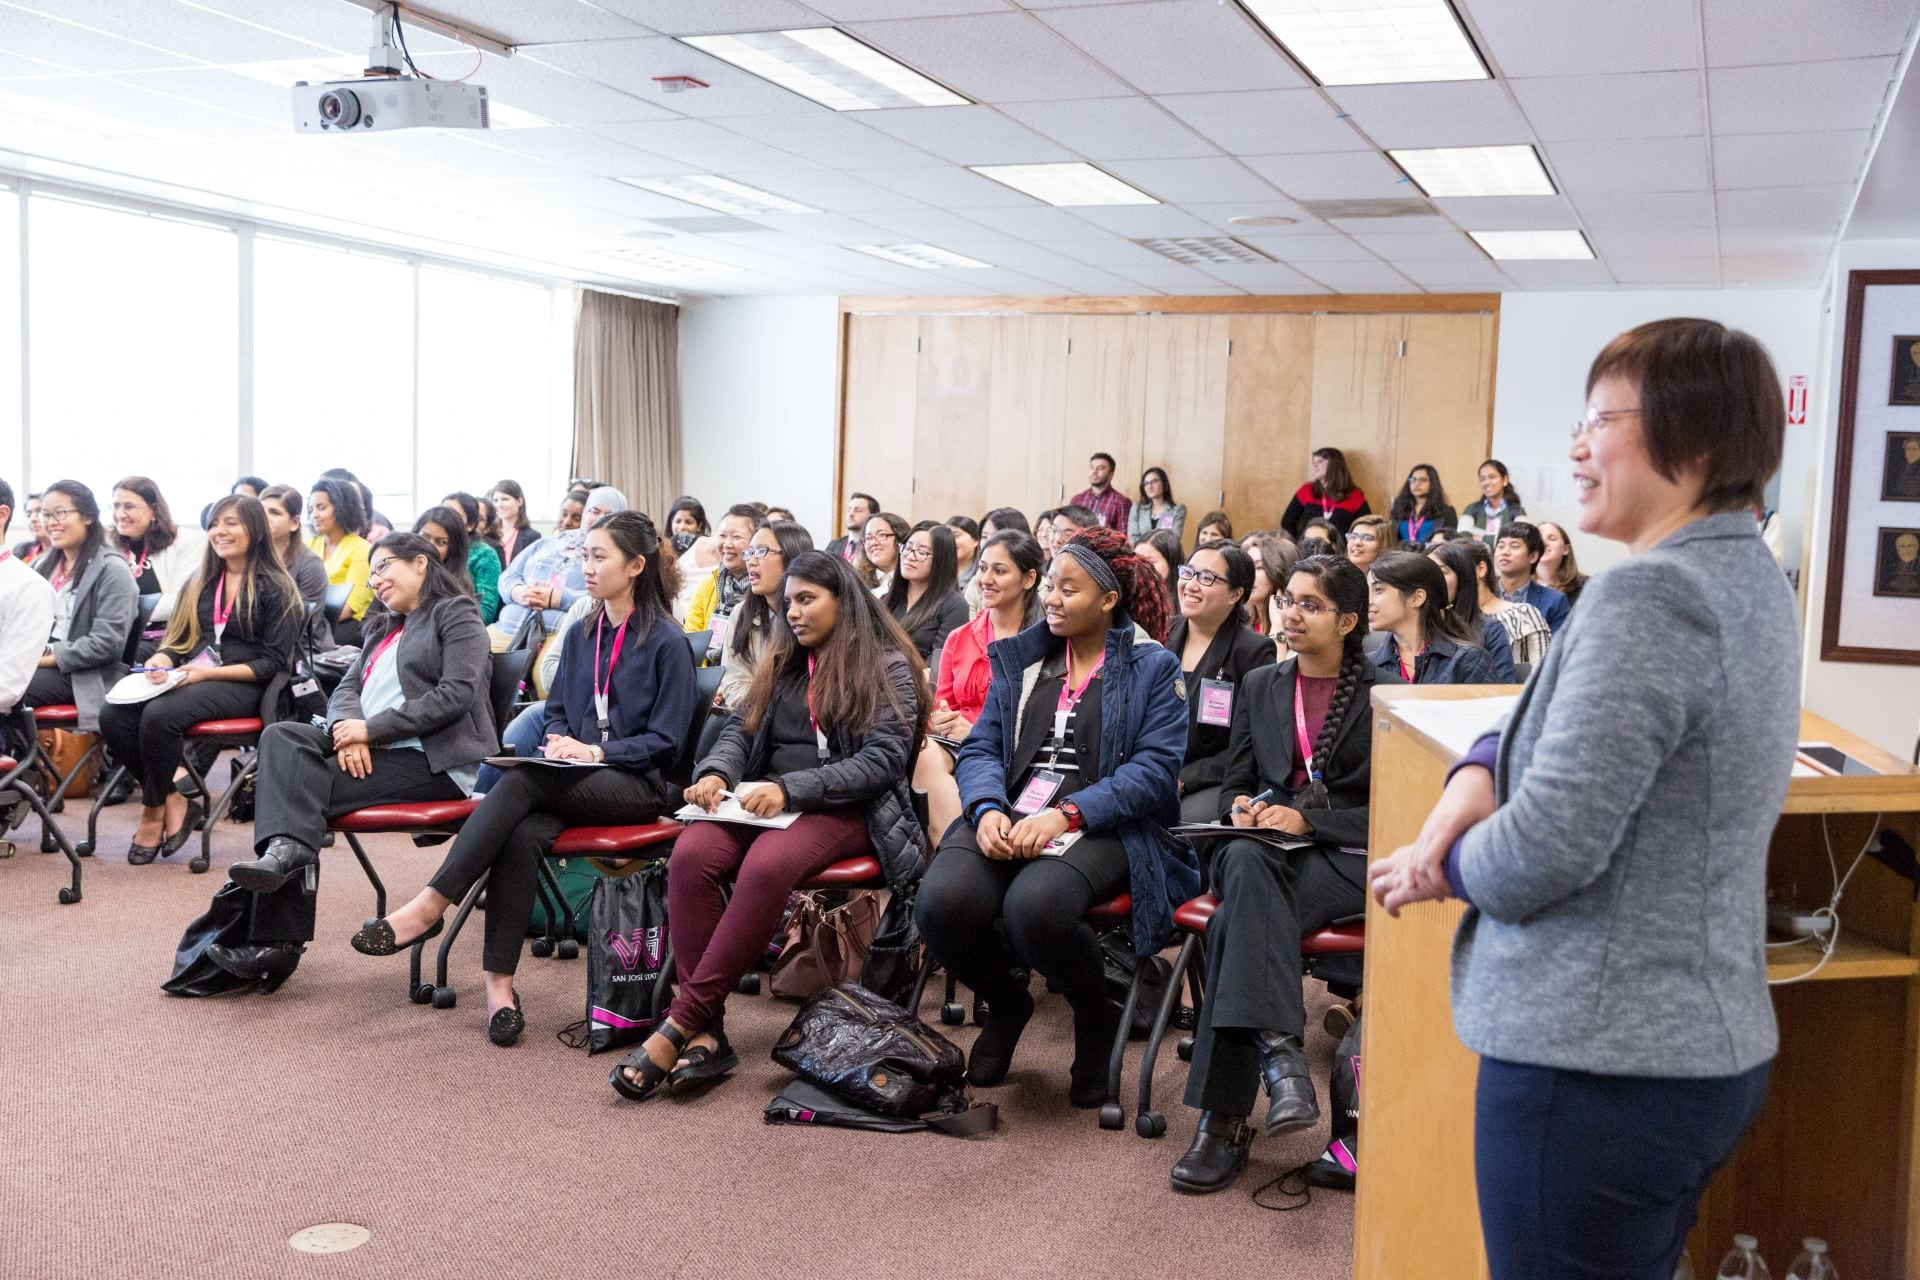 University and community college students listen to women leaders from top technology firms during the Silicon Valley Women in Engineering Conference in 2018. Photo by David Schmitz